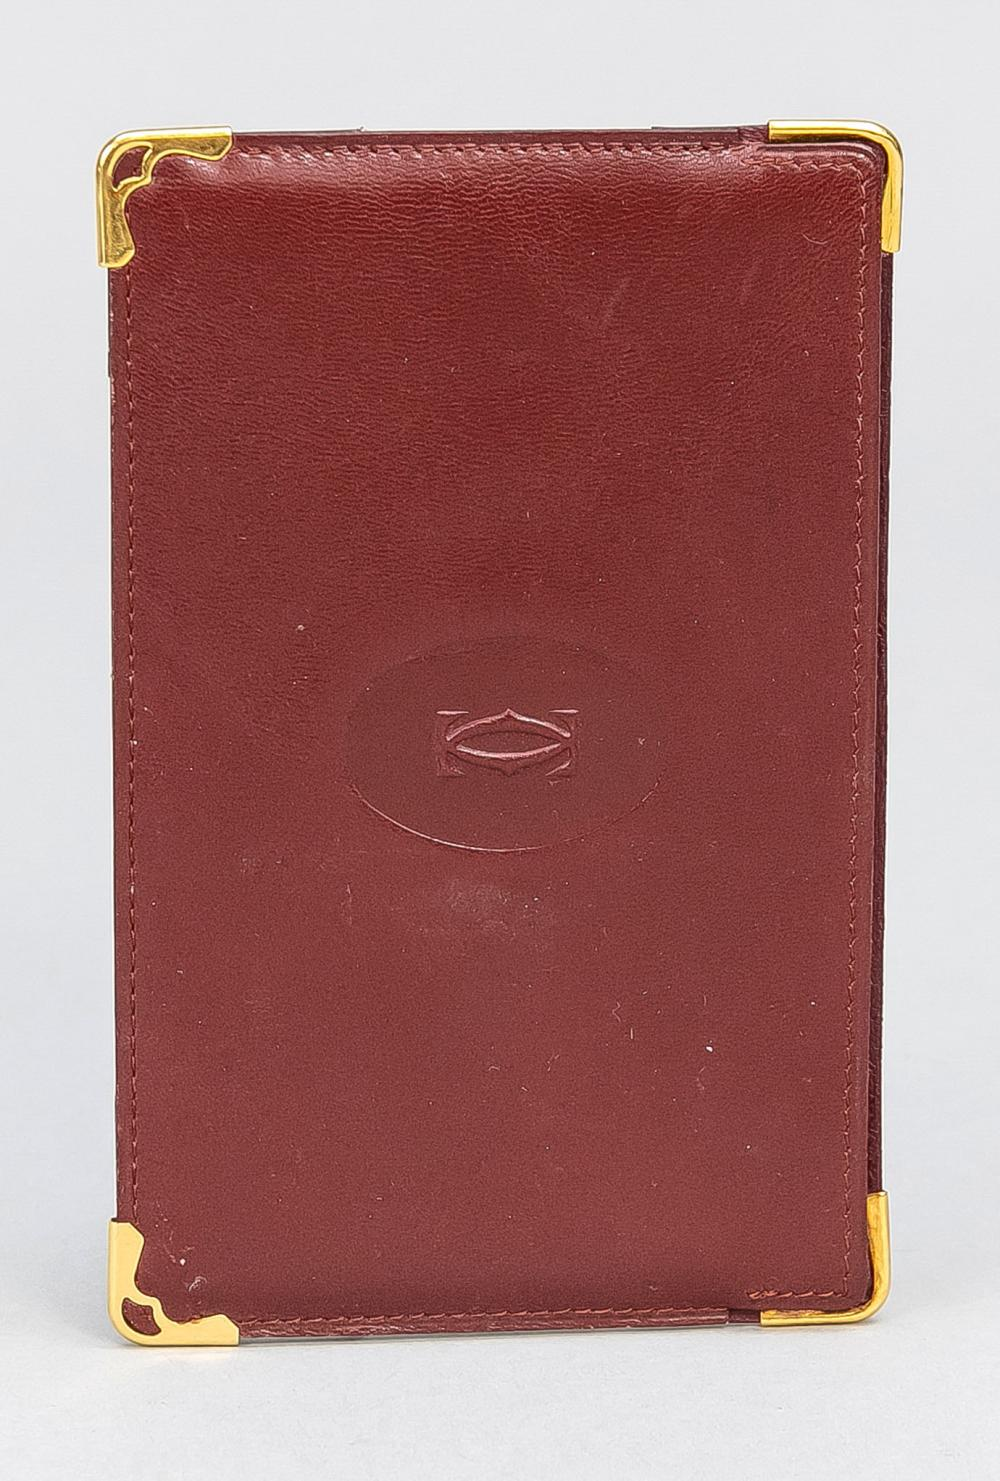 Cartier, small leather folder